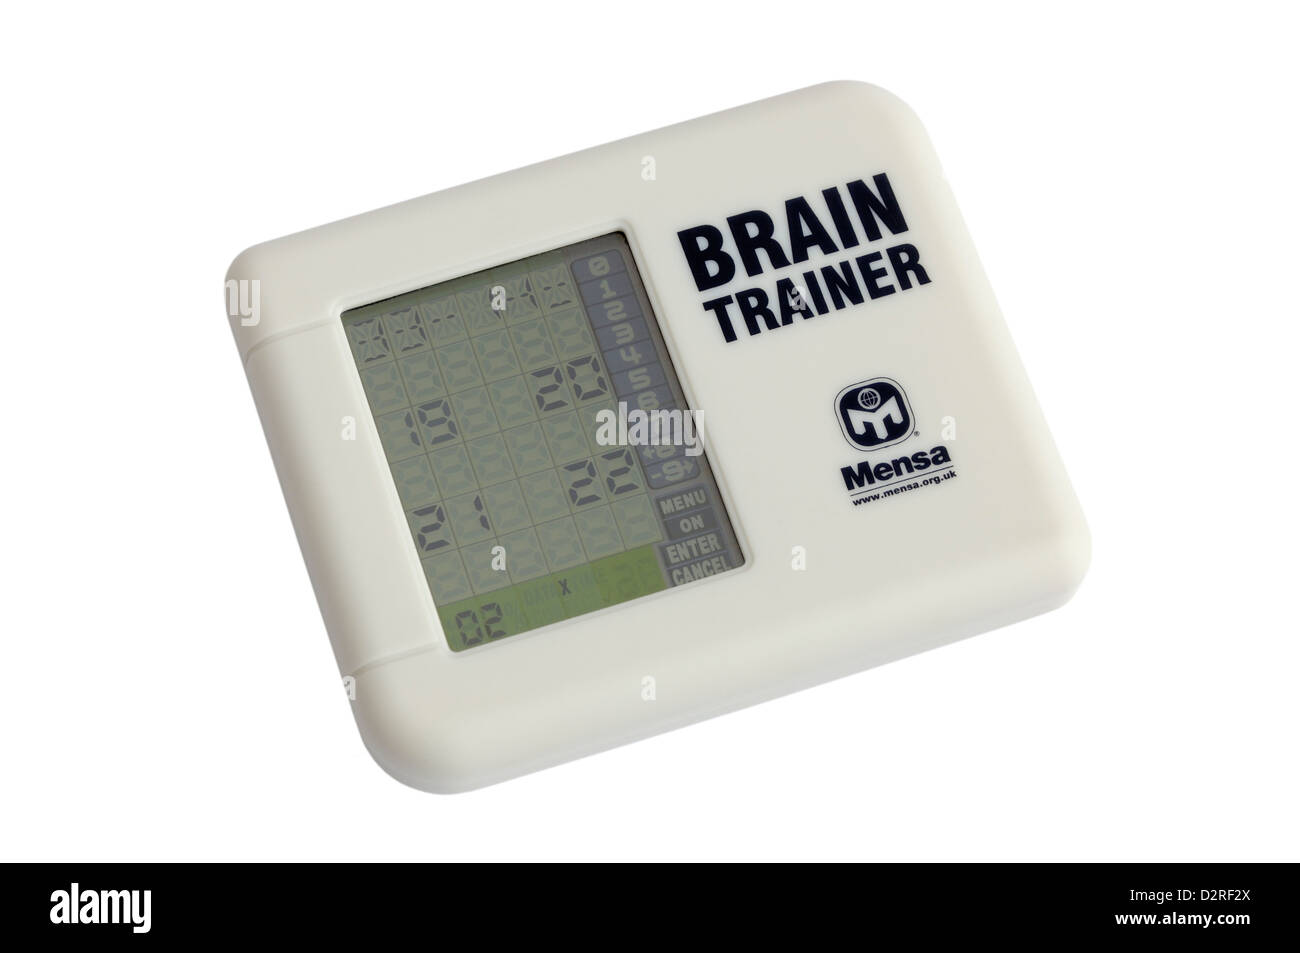 A Mensa electronic brain trainer - Stock Image